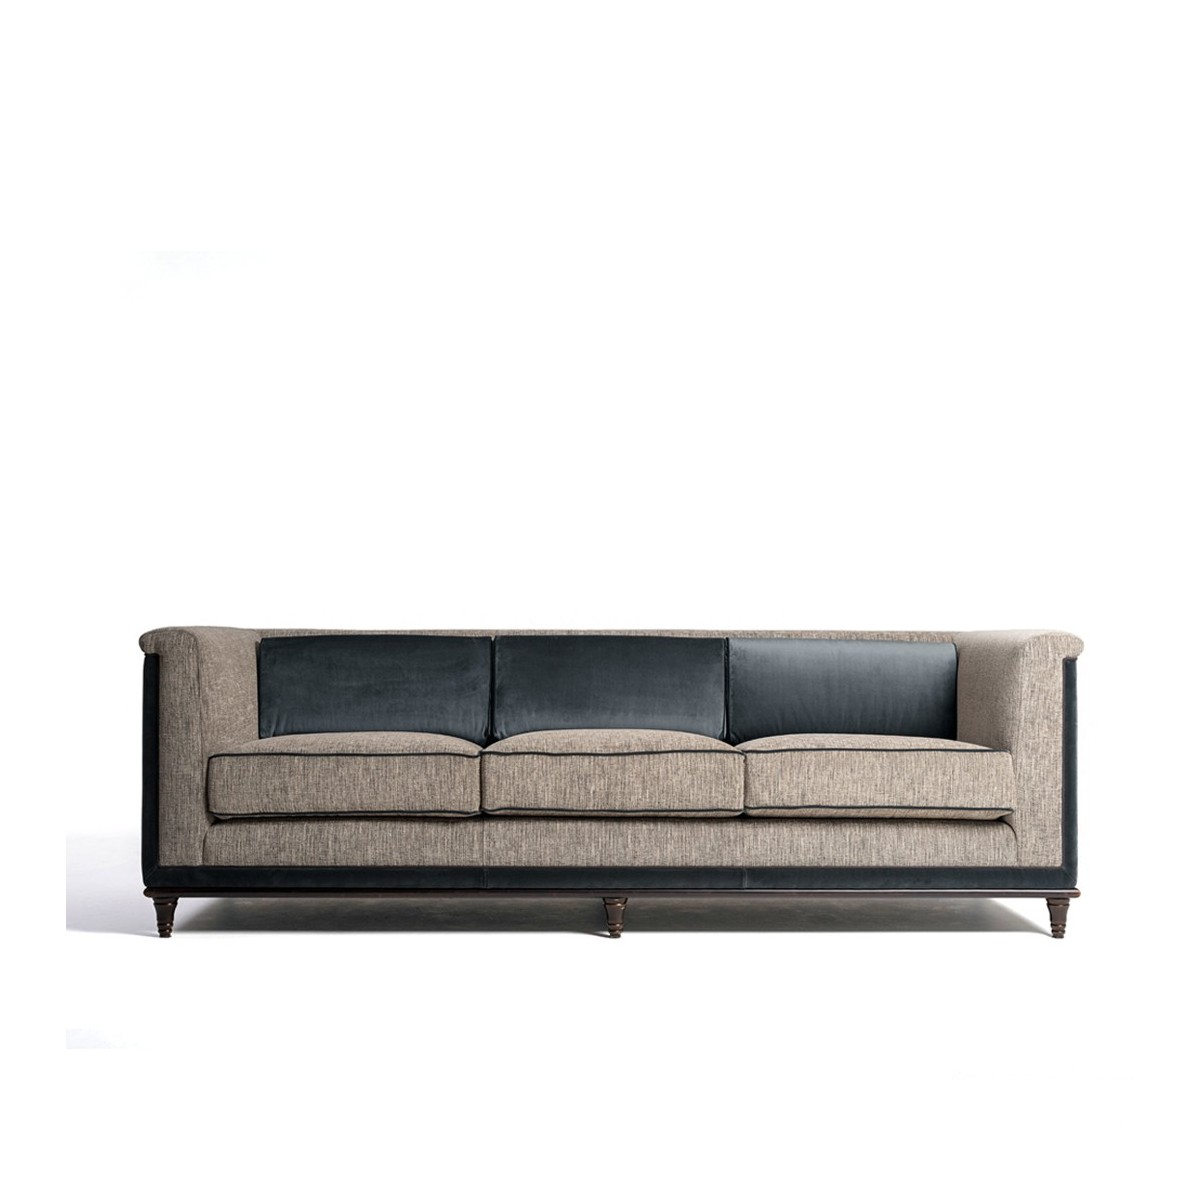 Balmoral - Combinations SofaBED